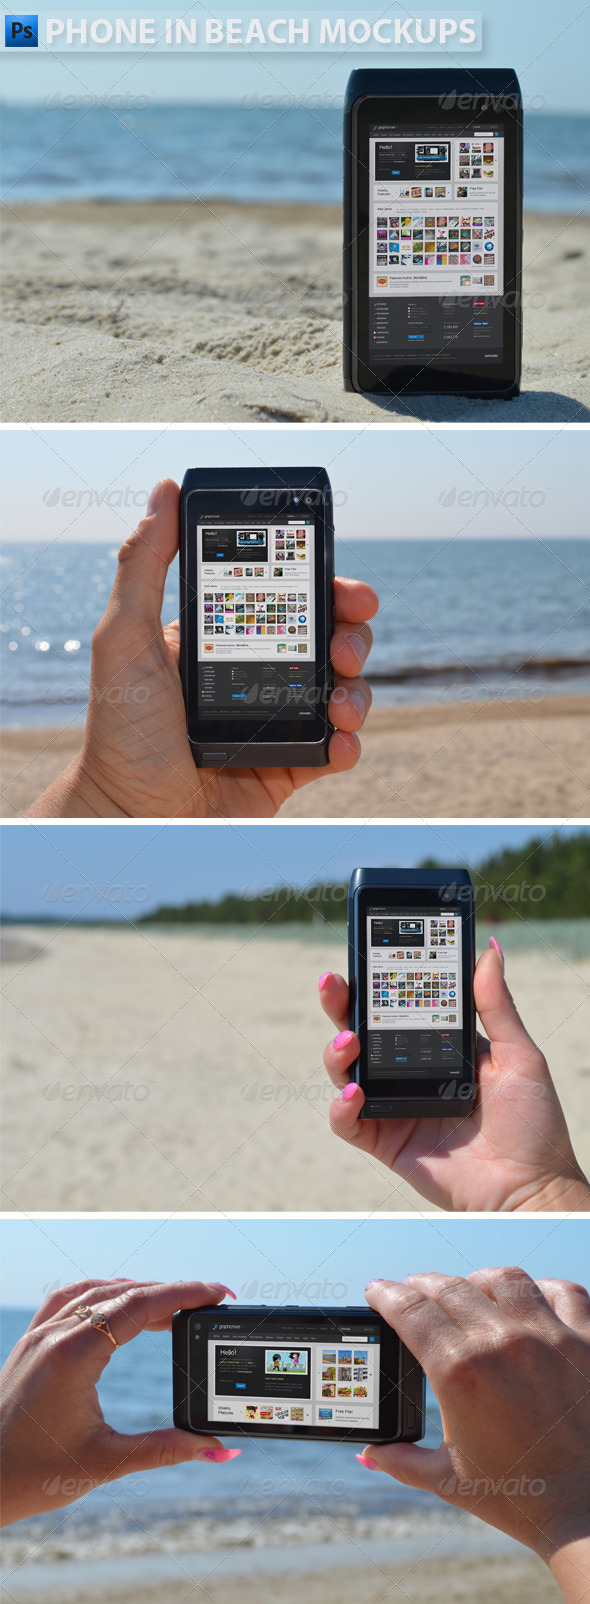 GraphicRiver Phone in Beach Mock-ups 4947975